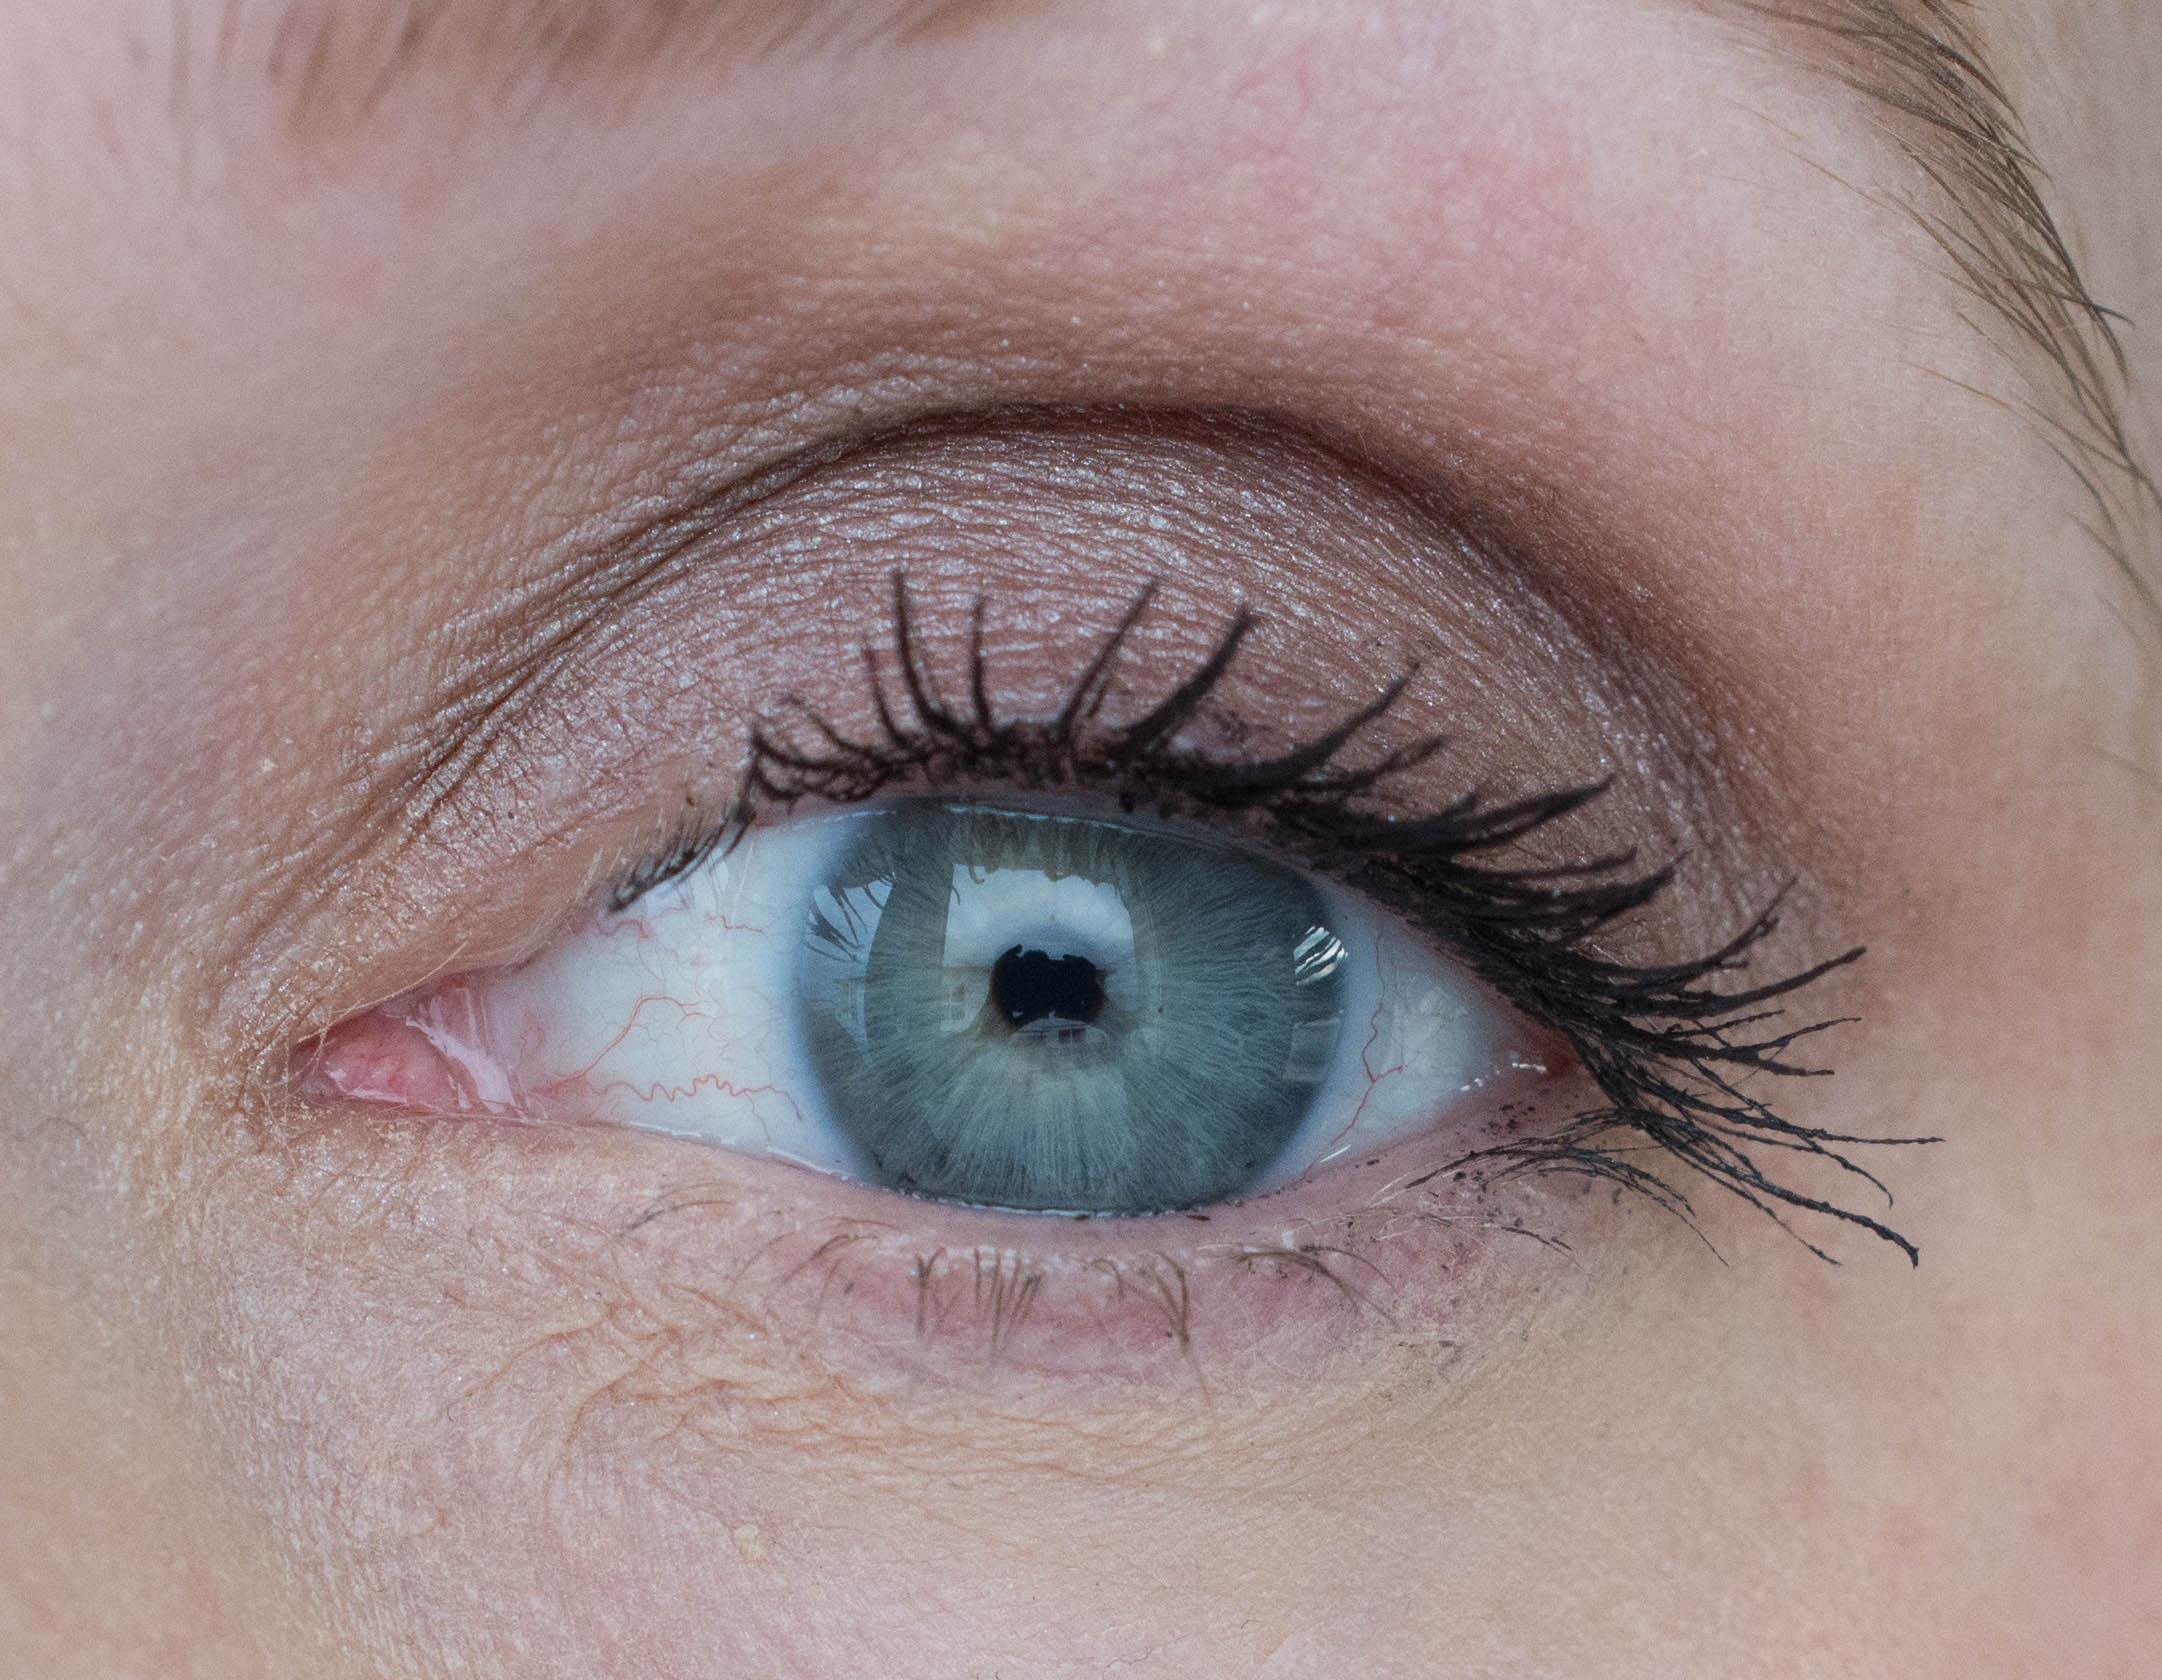 Lancôme Grandiôse Mascara applied - one coat